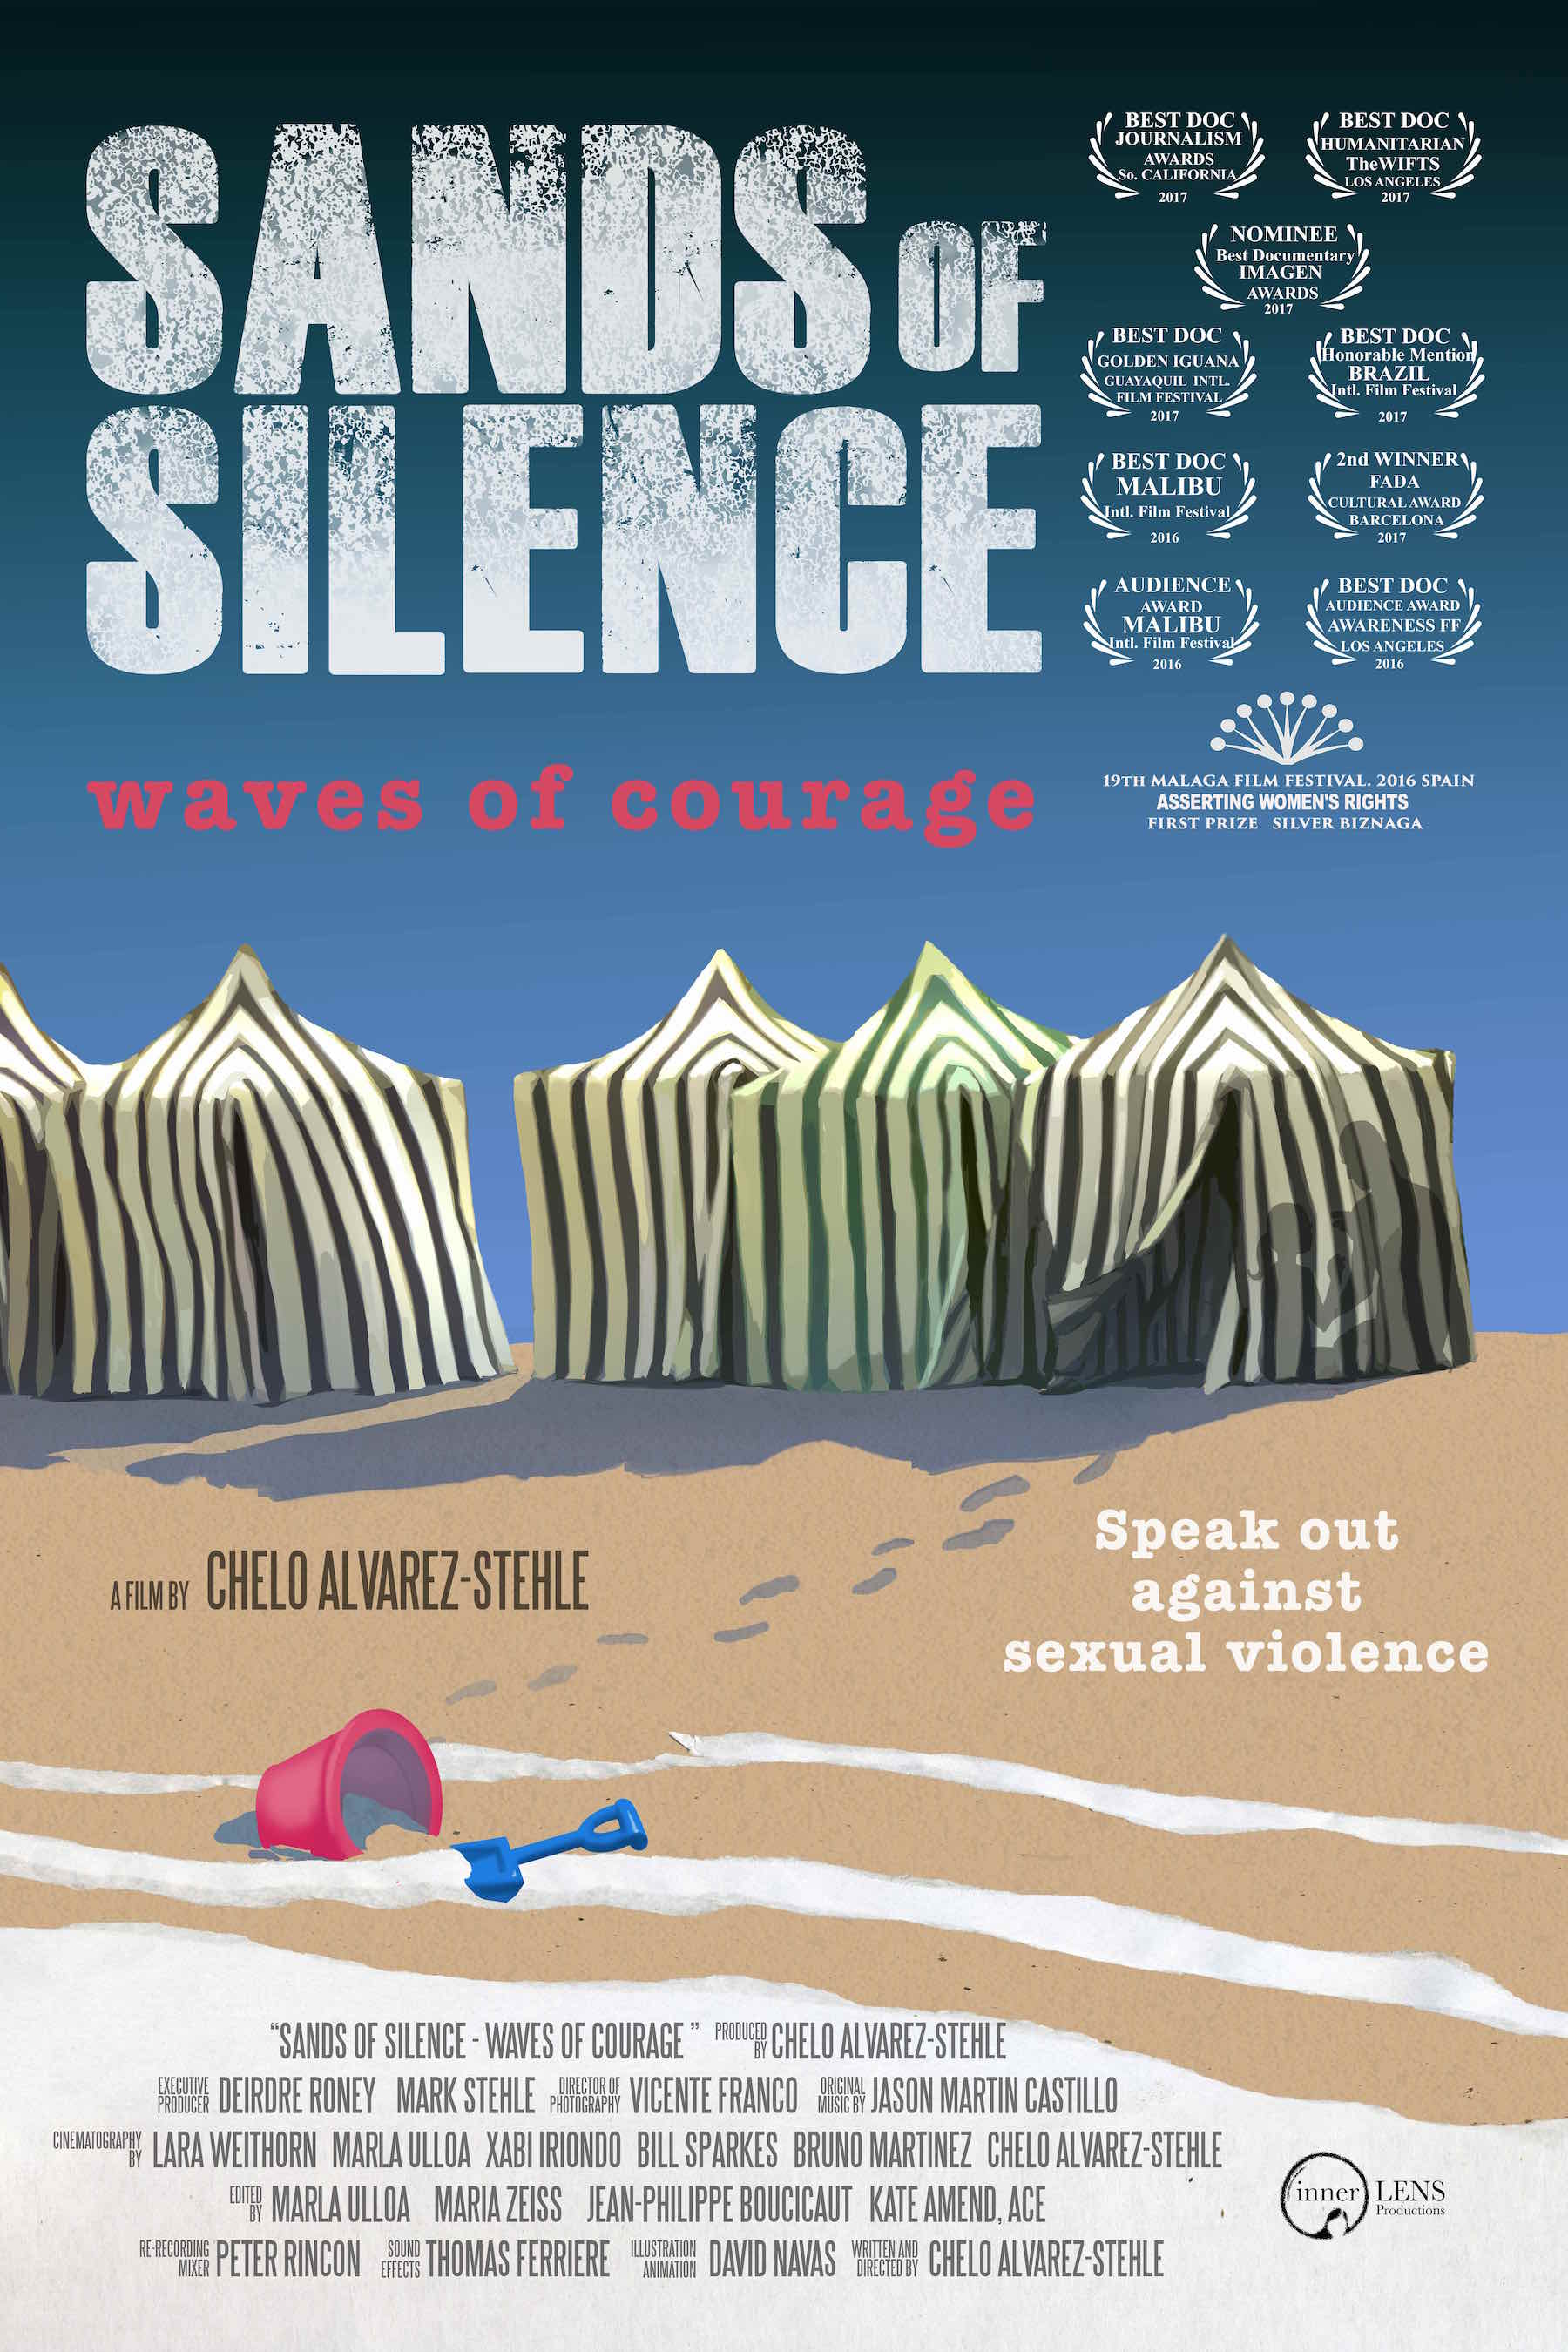 Lundi 19 mars à 20h : Projection « Sands of Silence:waves of courage » de Chelo Alvarez-Sthele en sa présence.